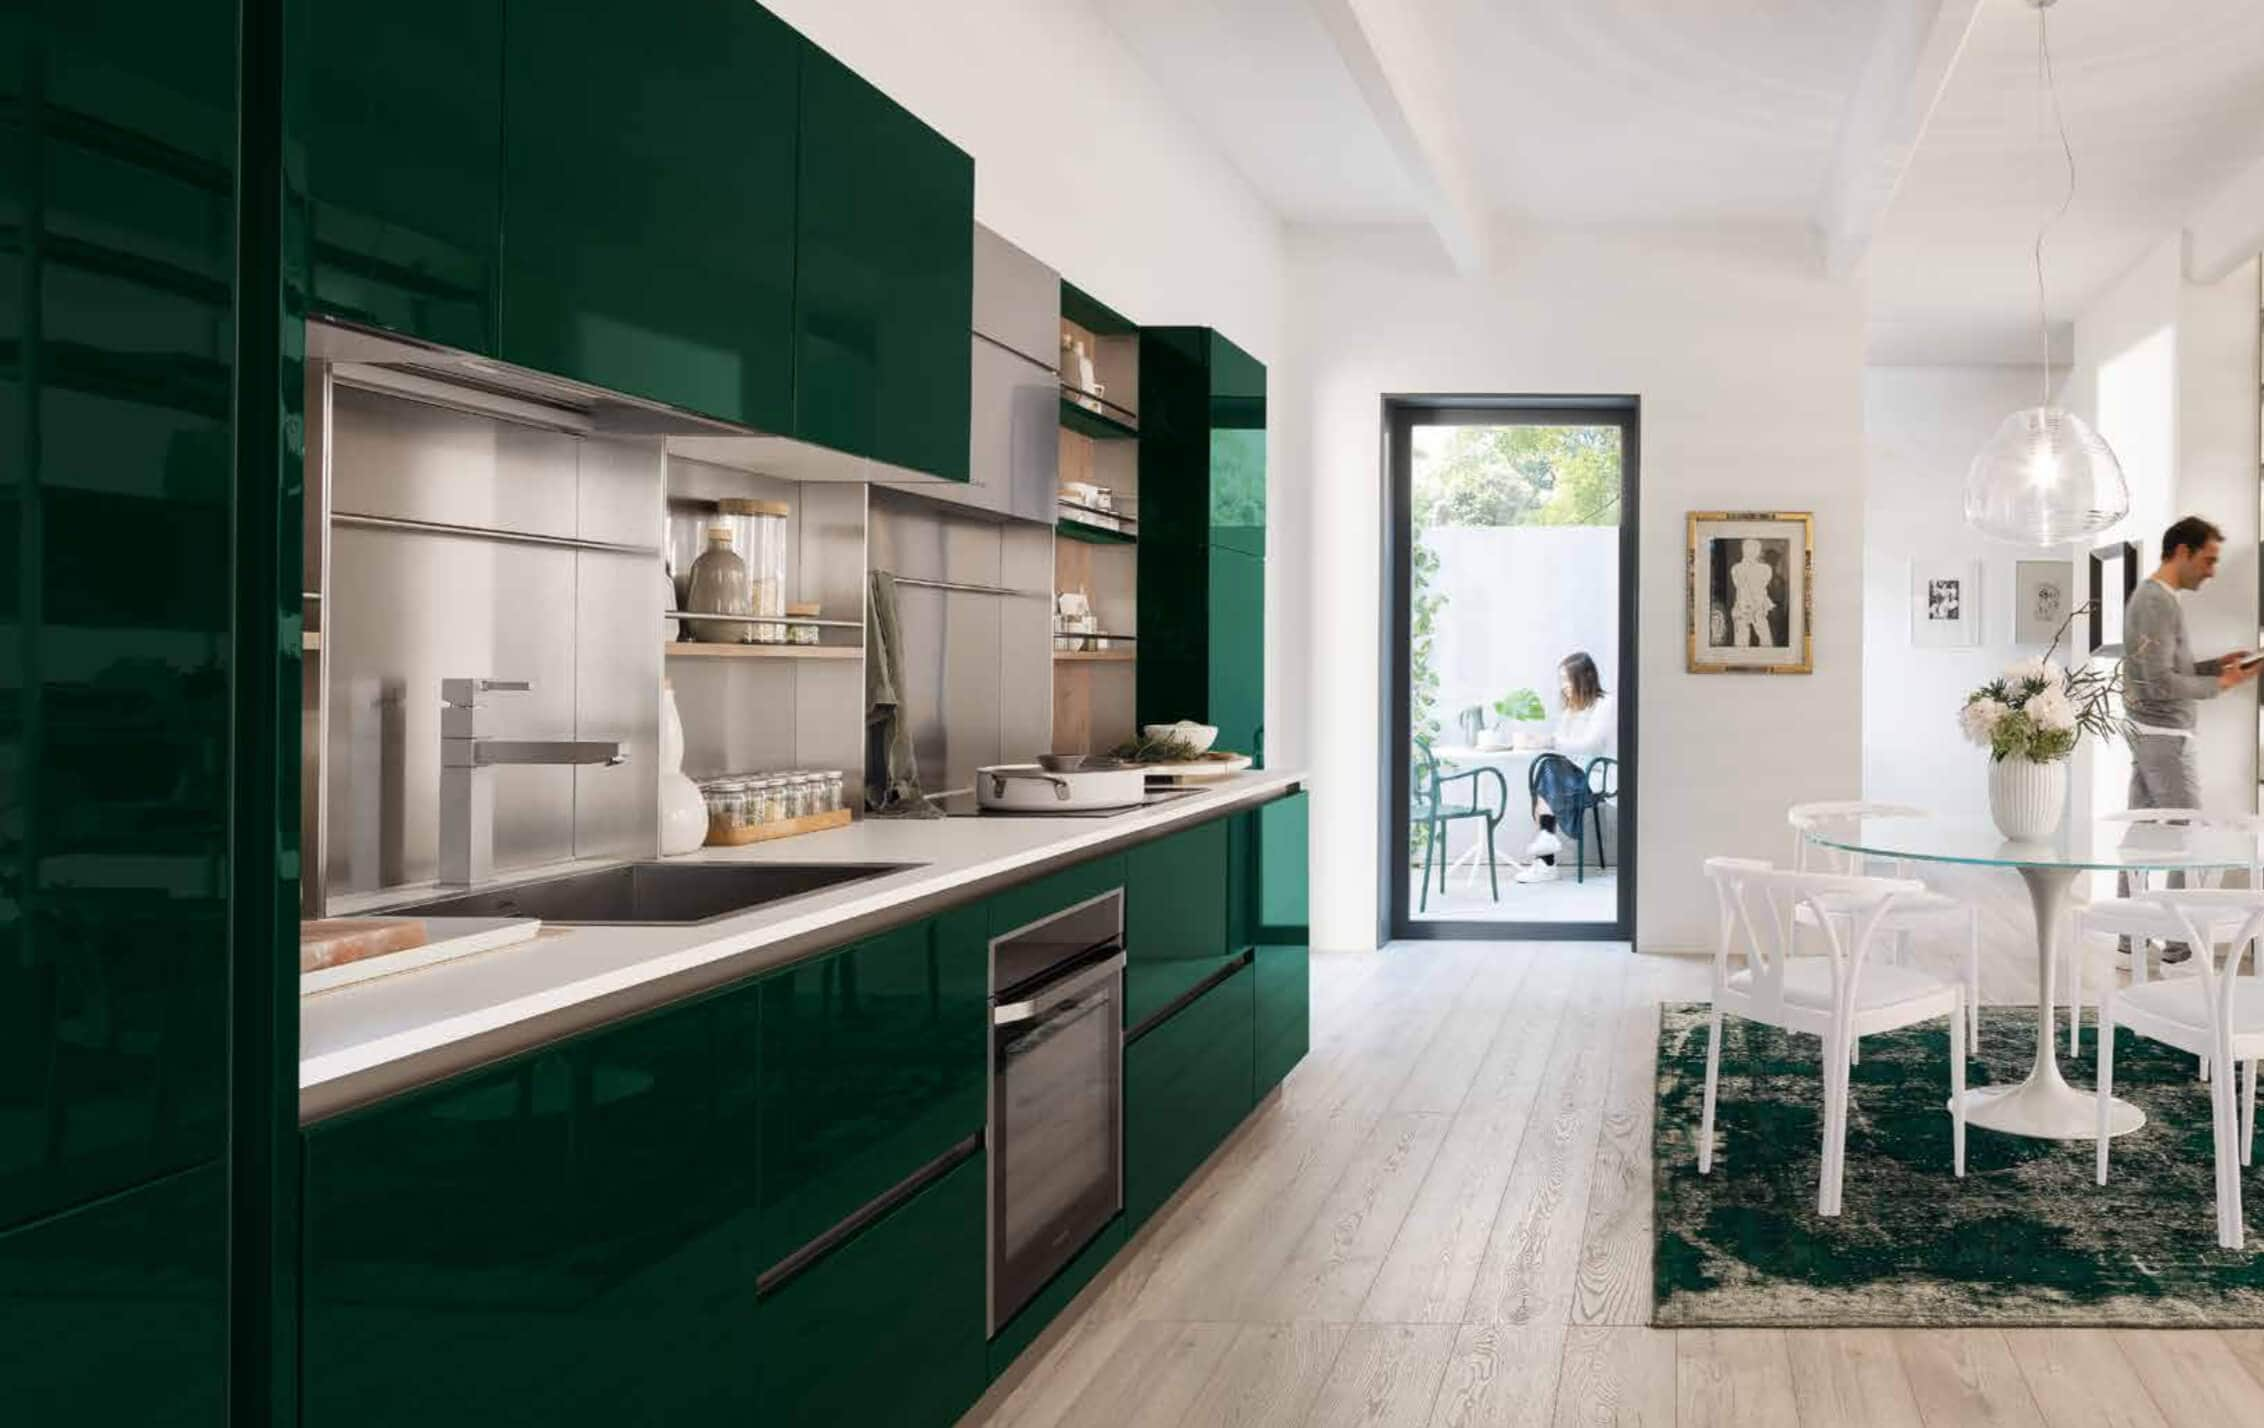 oyster-collection-green-thinking-kitchen-venetacucine-us